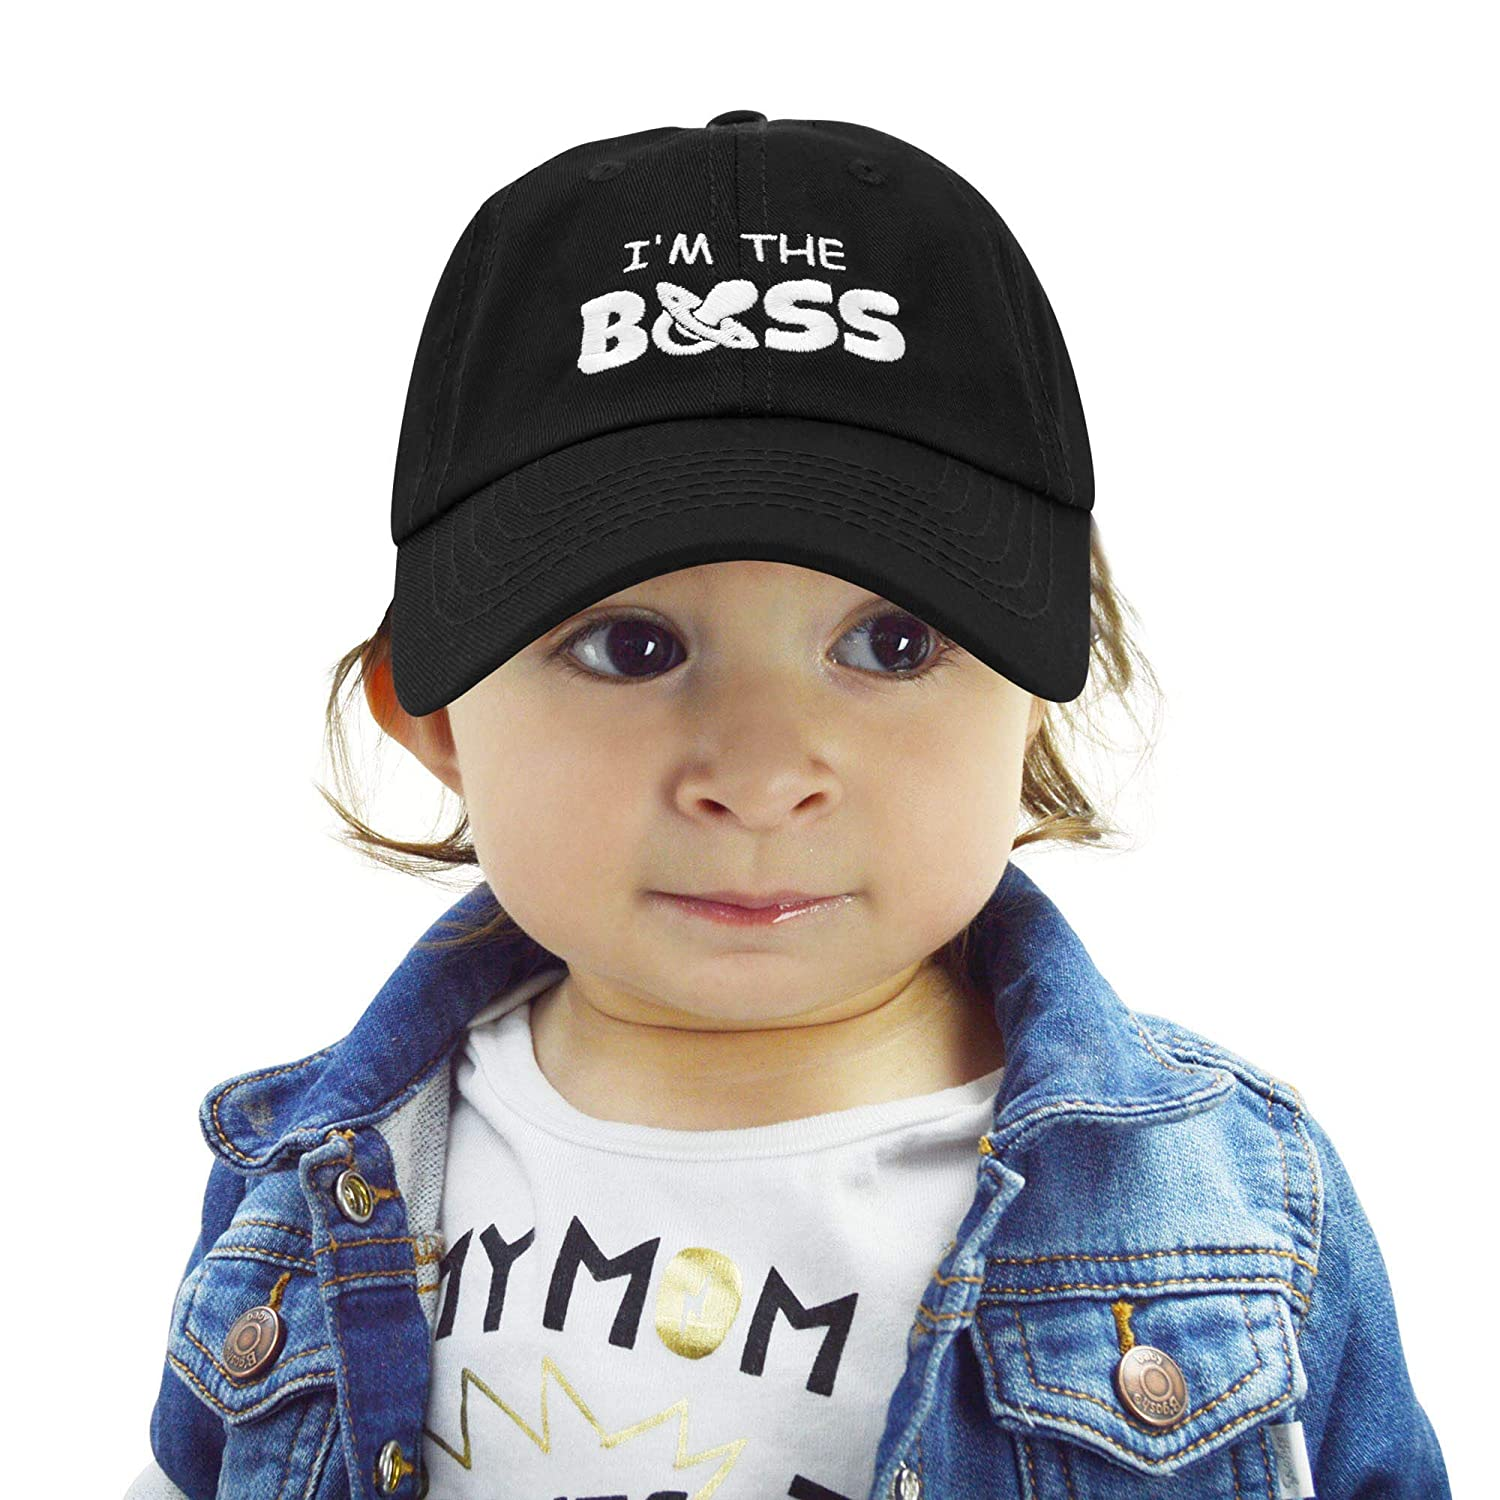 4b679f22 Amazon.com: DALIX I'm The Boss Baby Hat Infant Baseball Cap for Baby Girls  and Boys in Black: Clothing